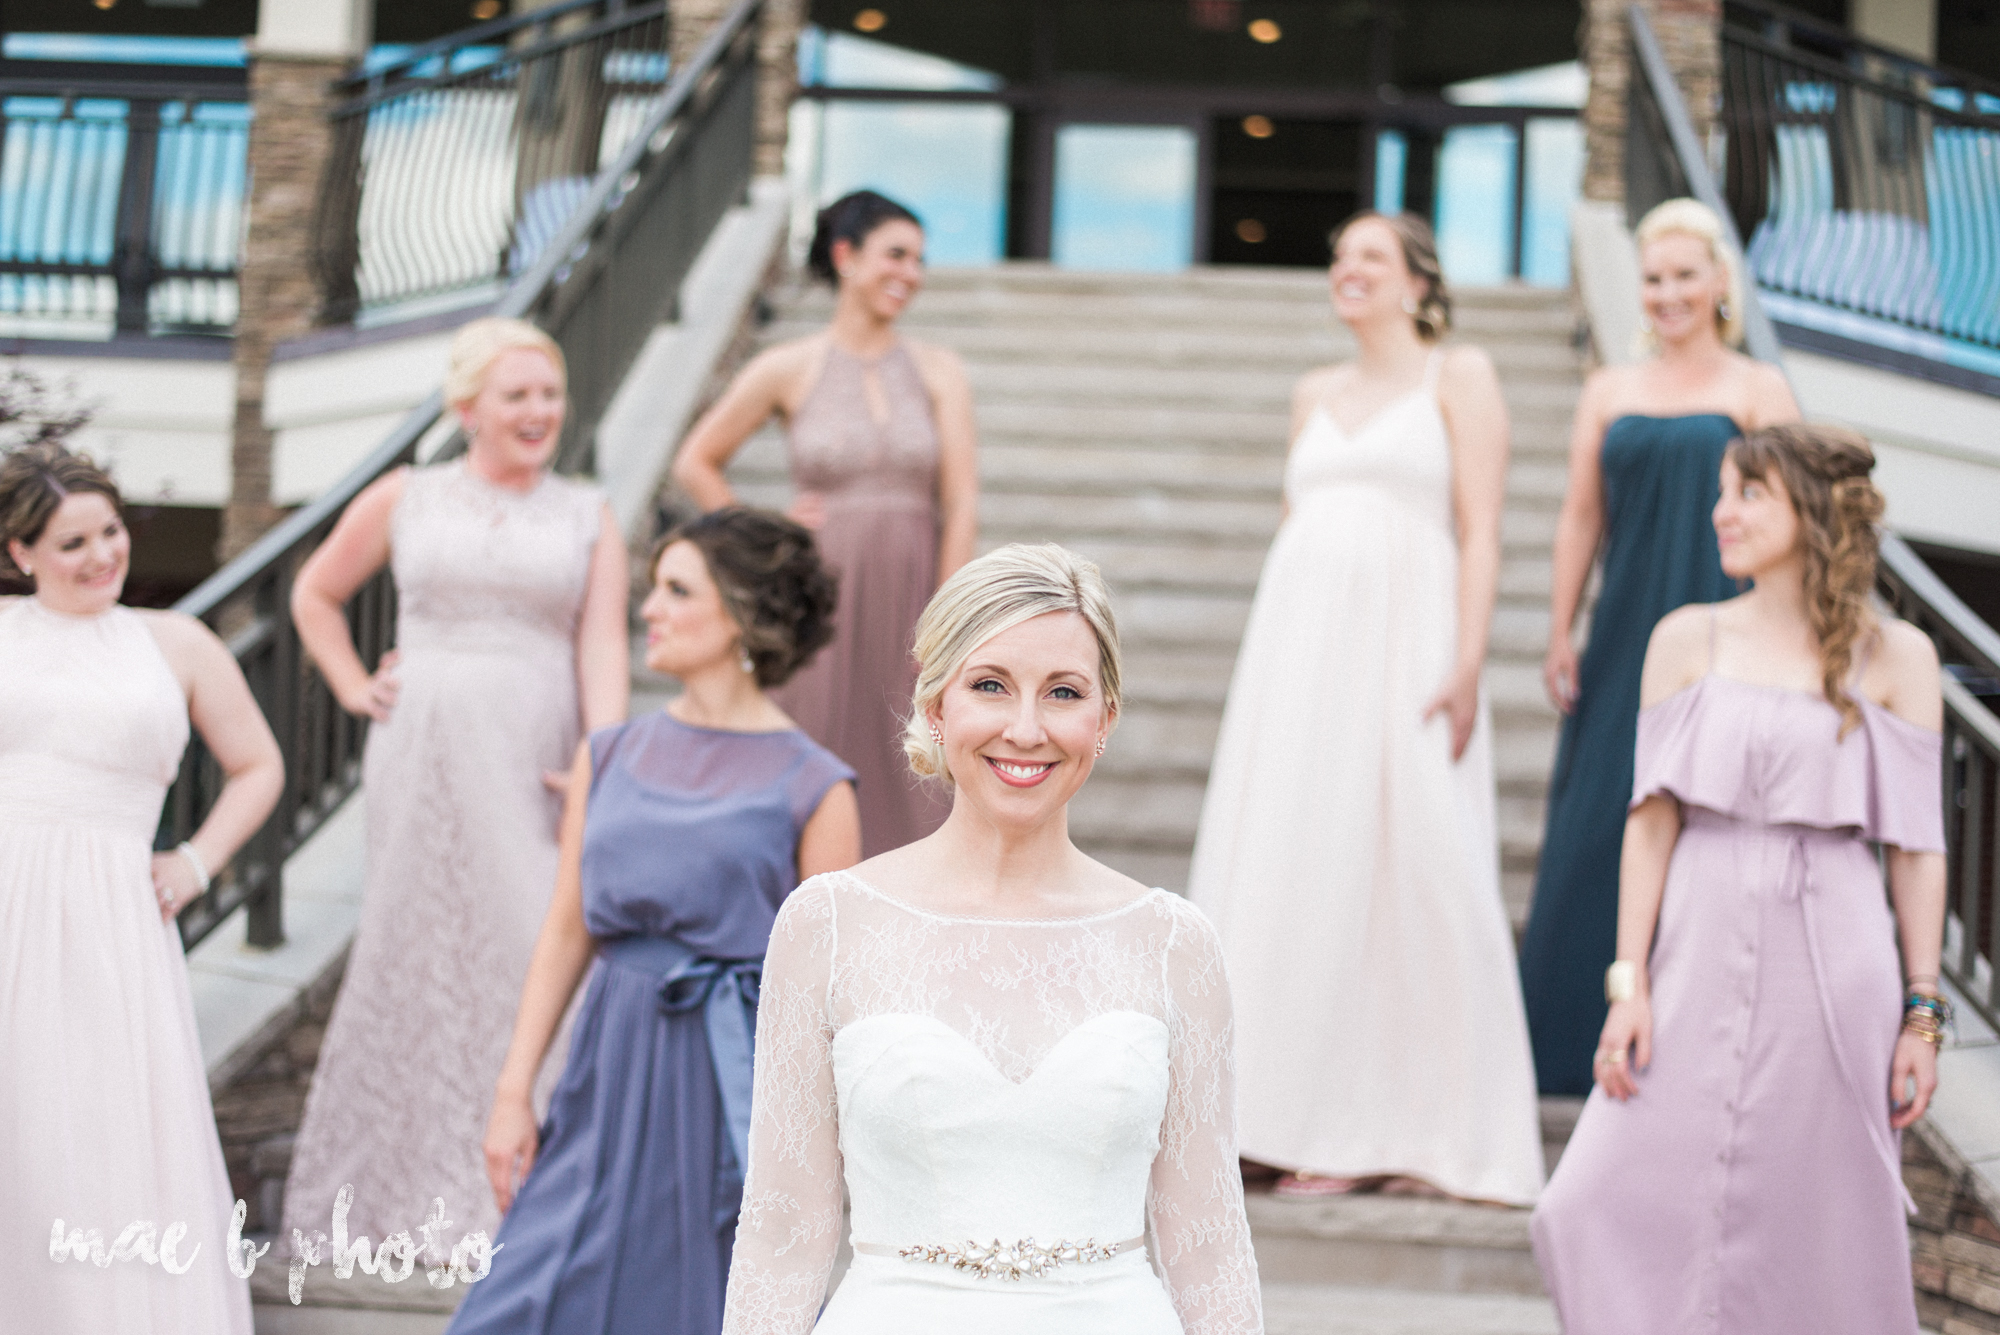 emily and michael's industrial chic summer country club wedding at the lake club in poland ohio photographed by cleveland wedding photographer mae b photo-107.jpg